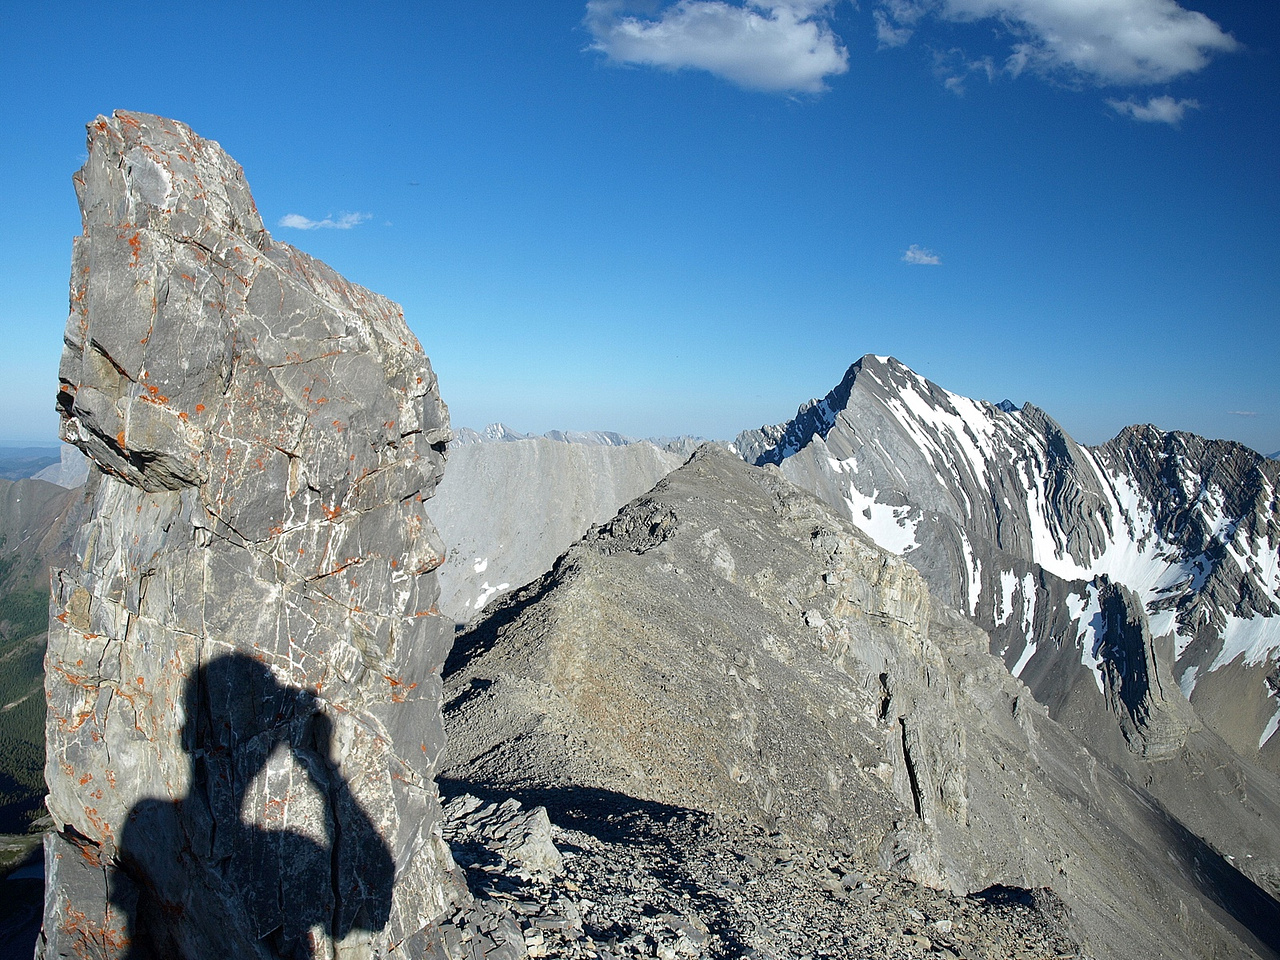 Heading back along the summit ridge - Storm Mountain on the right.